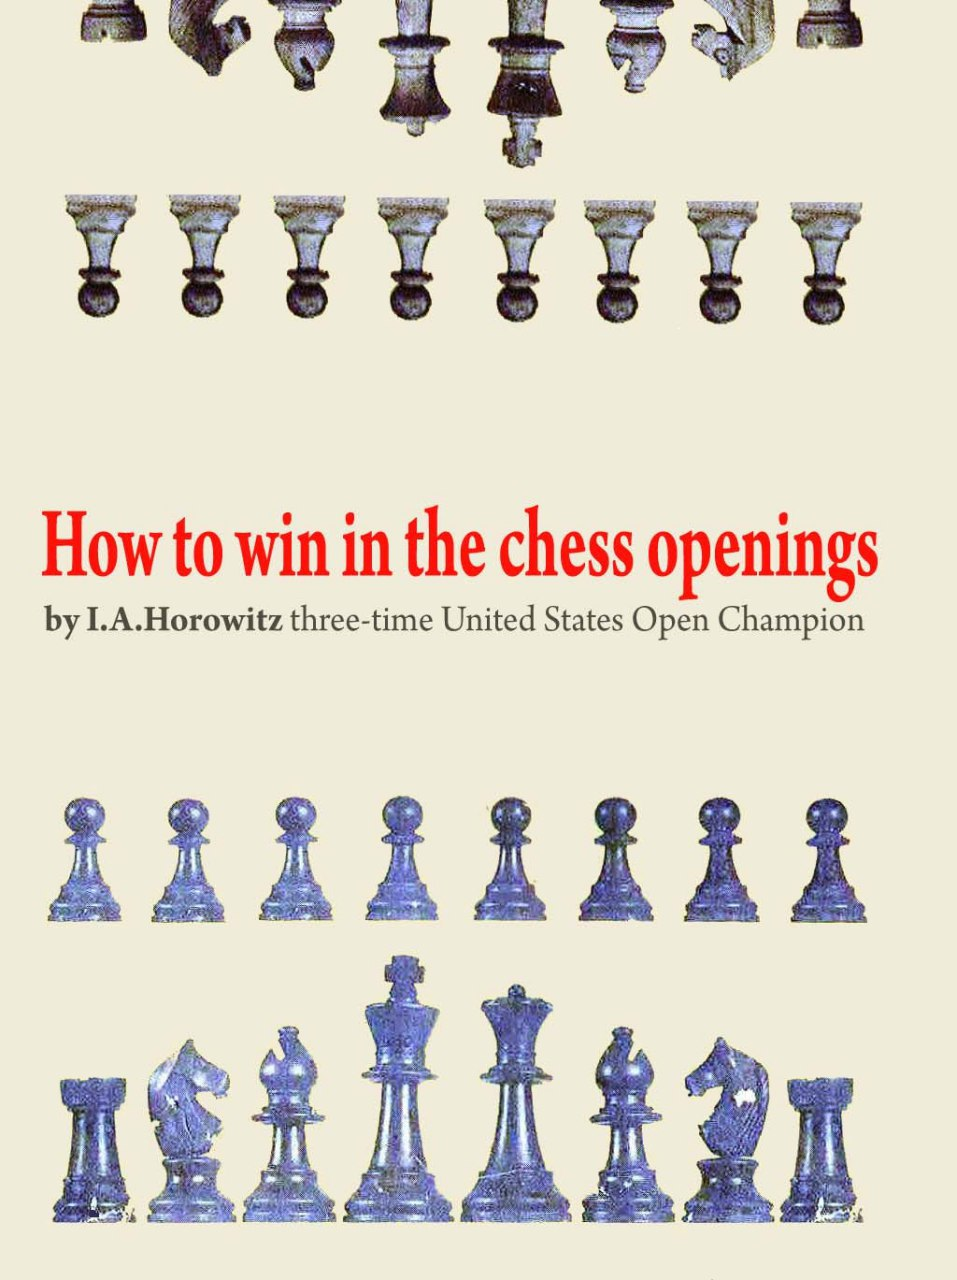 I.A. Horowitz_How to Win in Chess Openings PDF+PGN Horo10